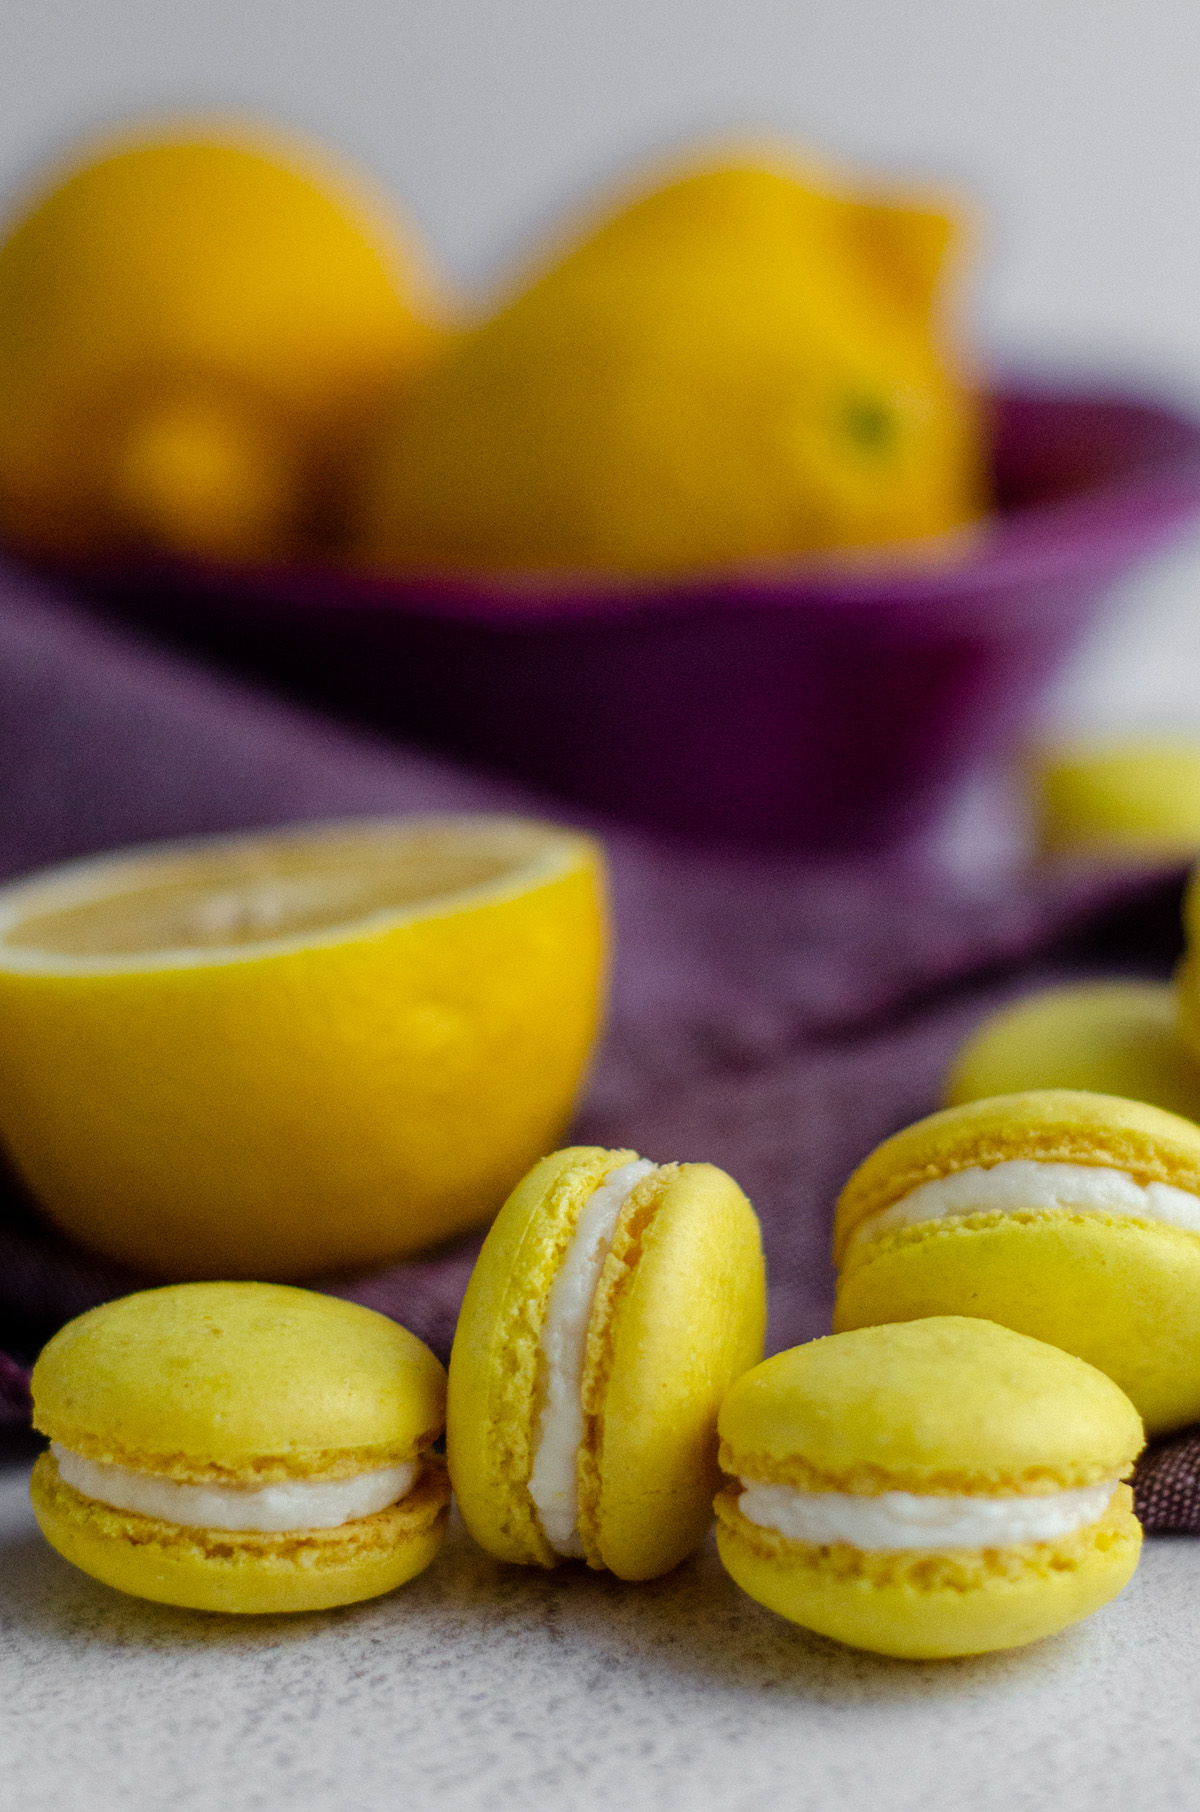 lemon macarons with a purple kitchen towel and sliced lemons in the background